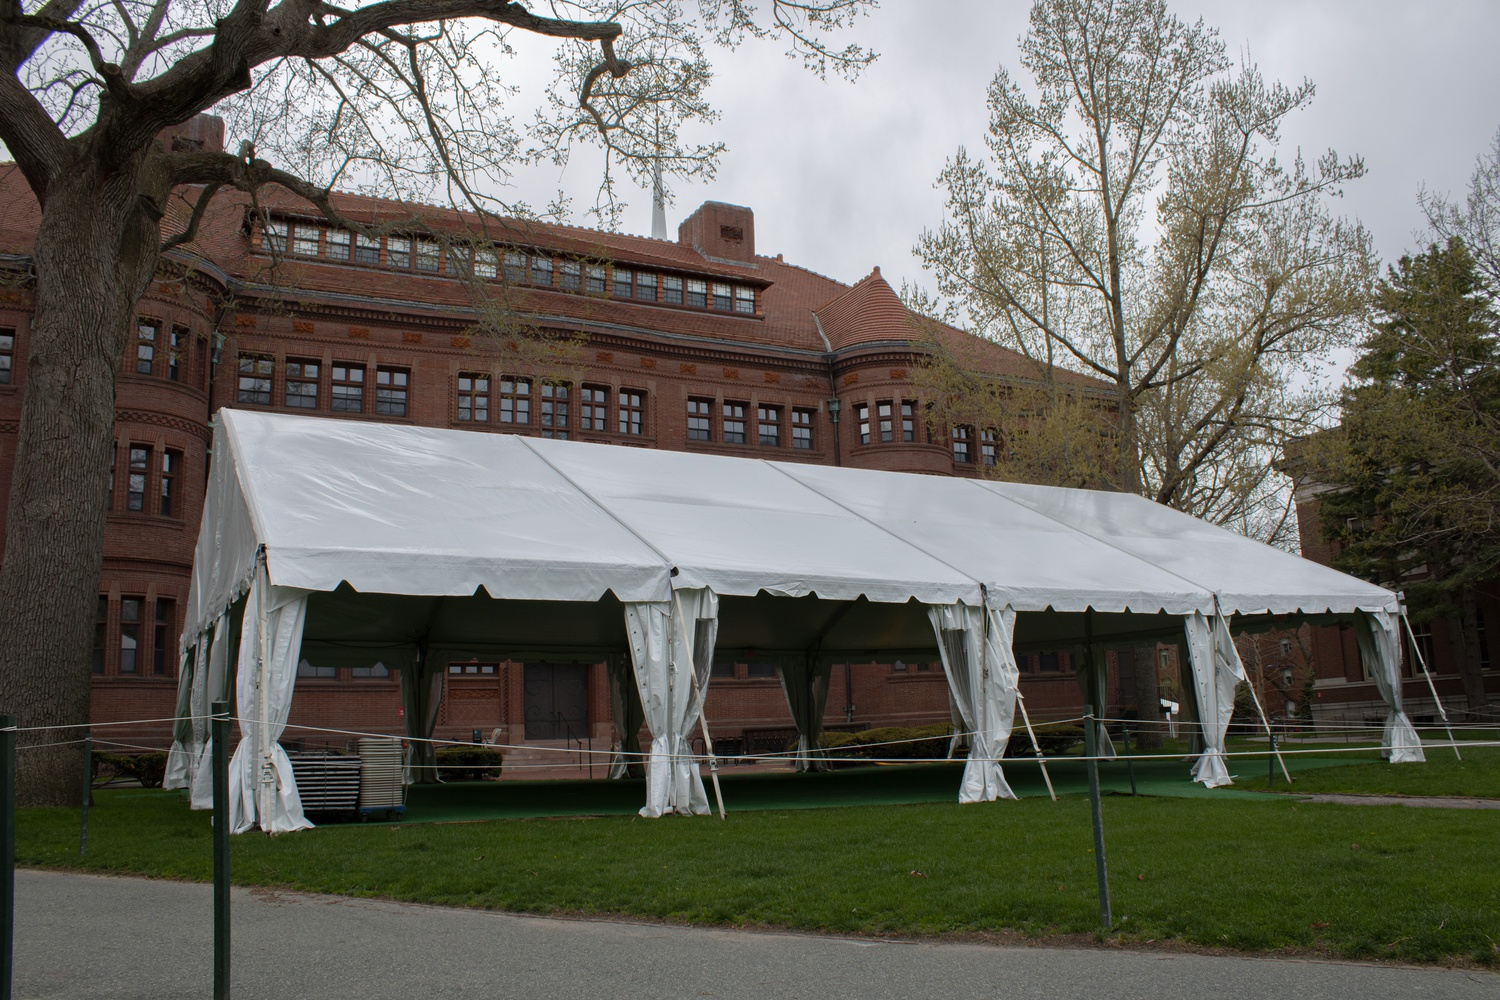 The College is experimenting with in-person and hybrid courses to develop best practices for in-person teaching and learning, with some classes being held in a tent behind Sever Hall.